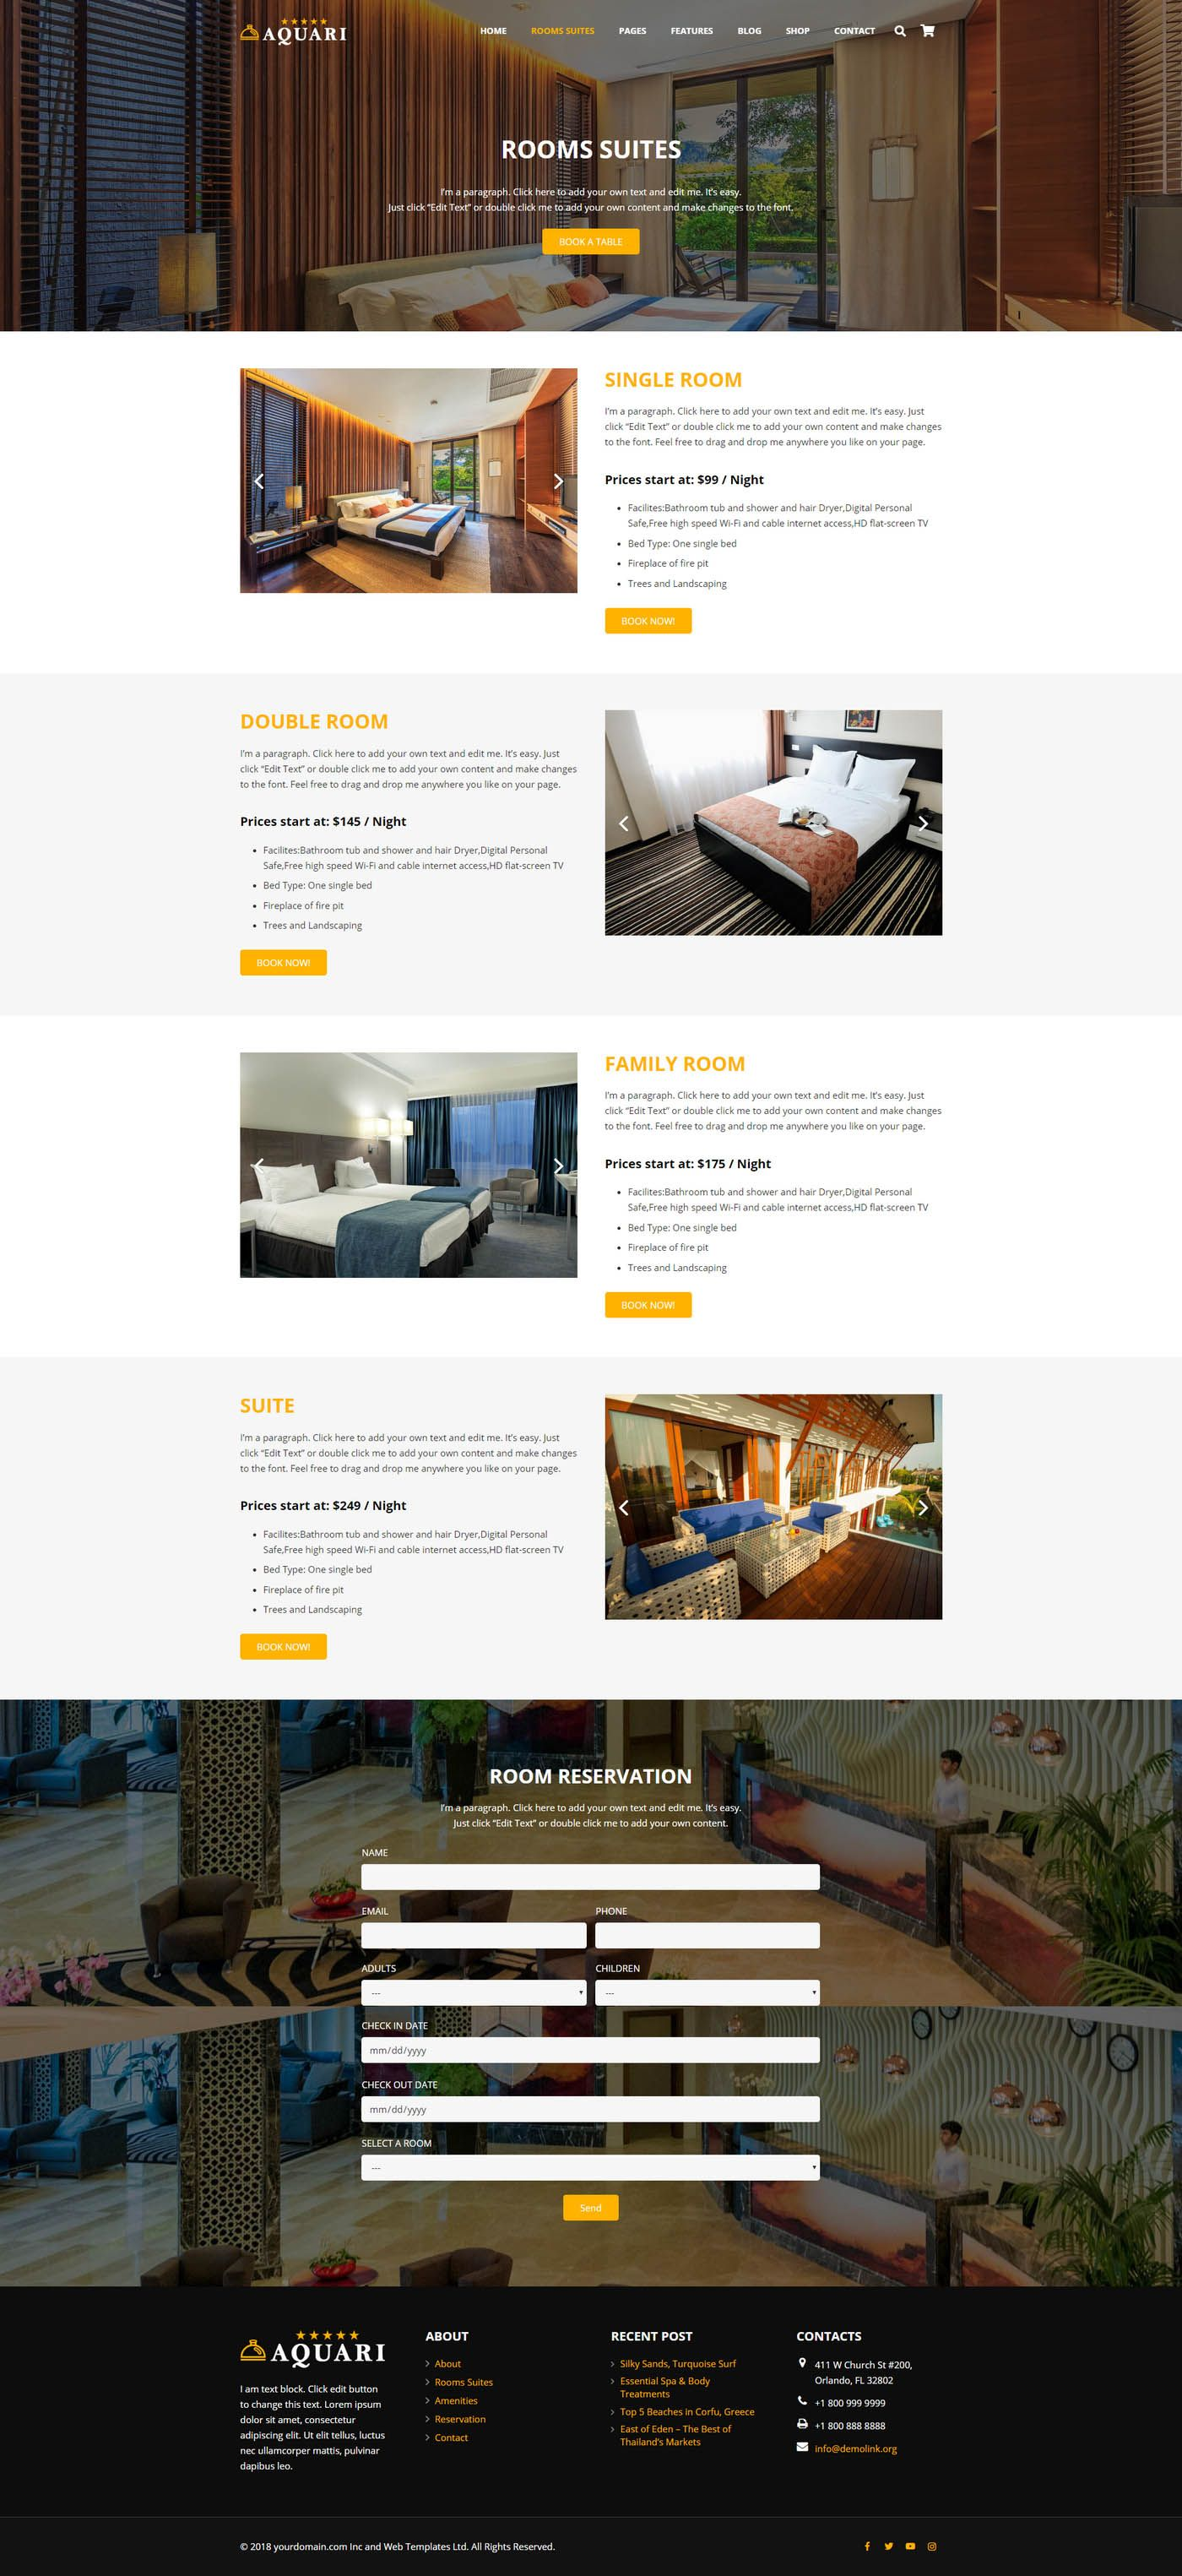 Aquari - Hotel Wordpress Theme Screenshot 7